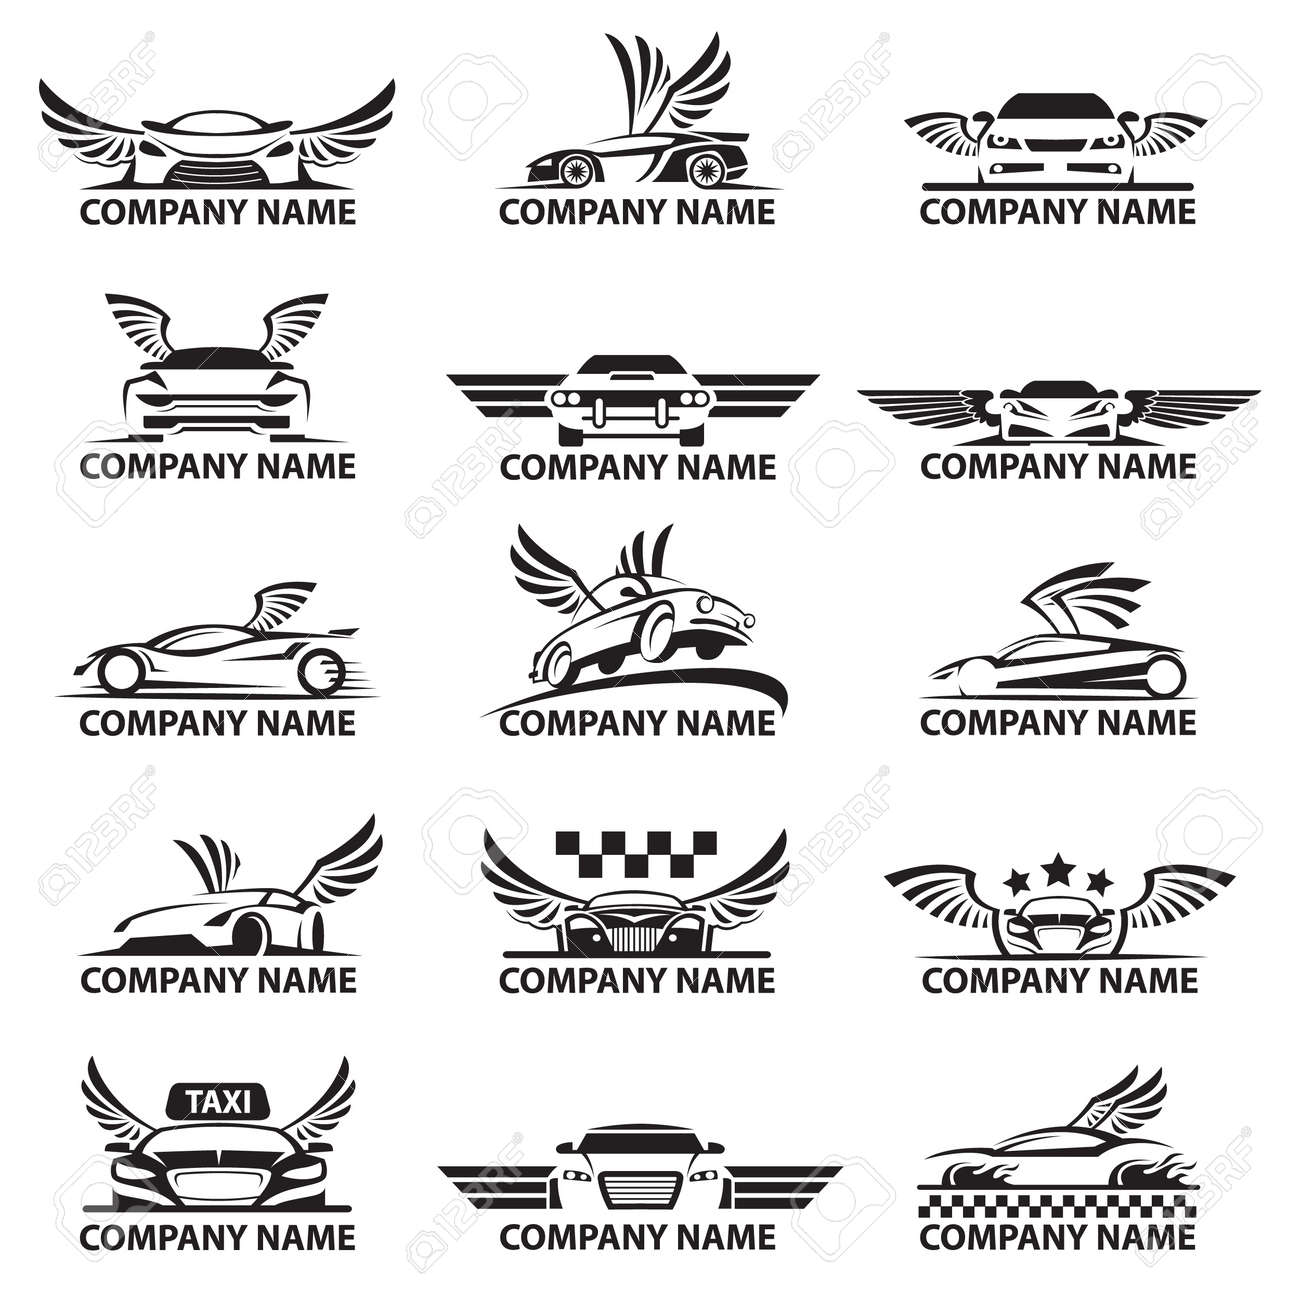 Collection Of Car Logos With Wings Royalty Free Cliparts Vectors And Stock Illustration Image 66090530